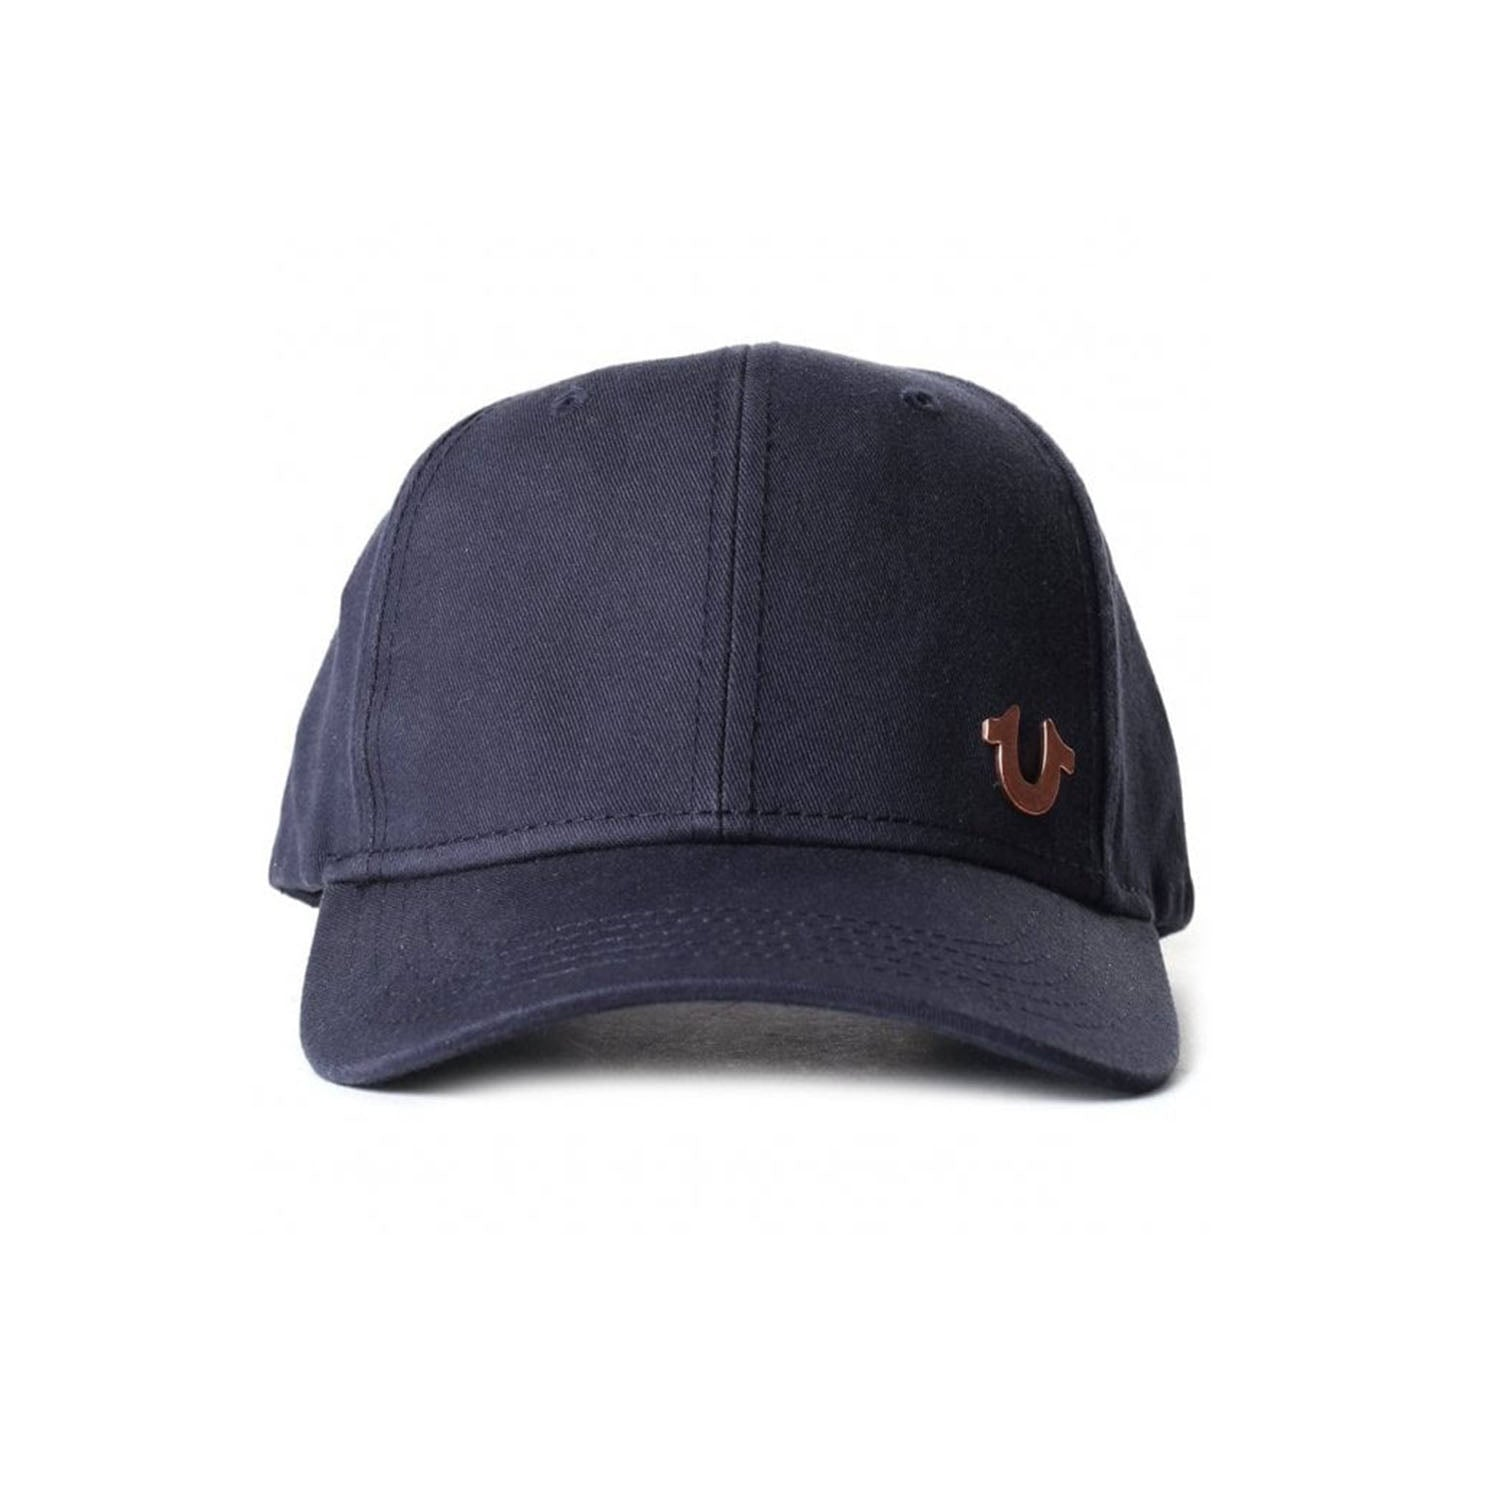 True Religion Navy Baseball Cap